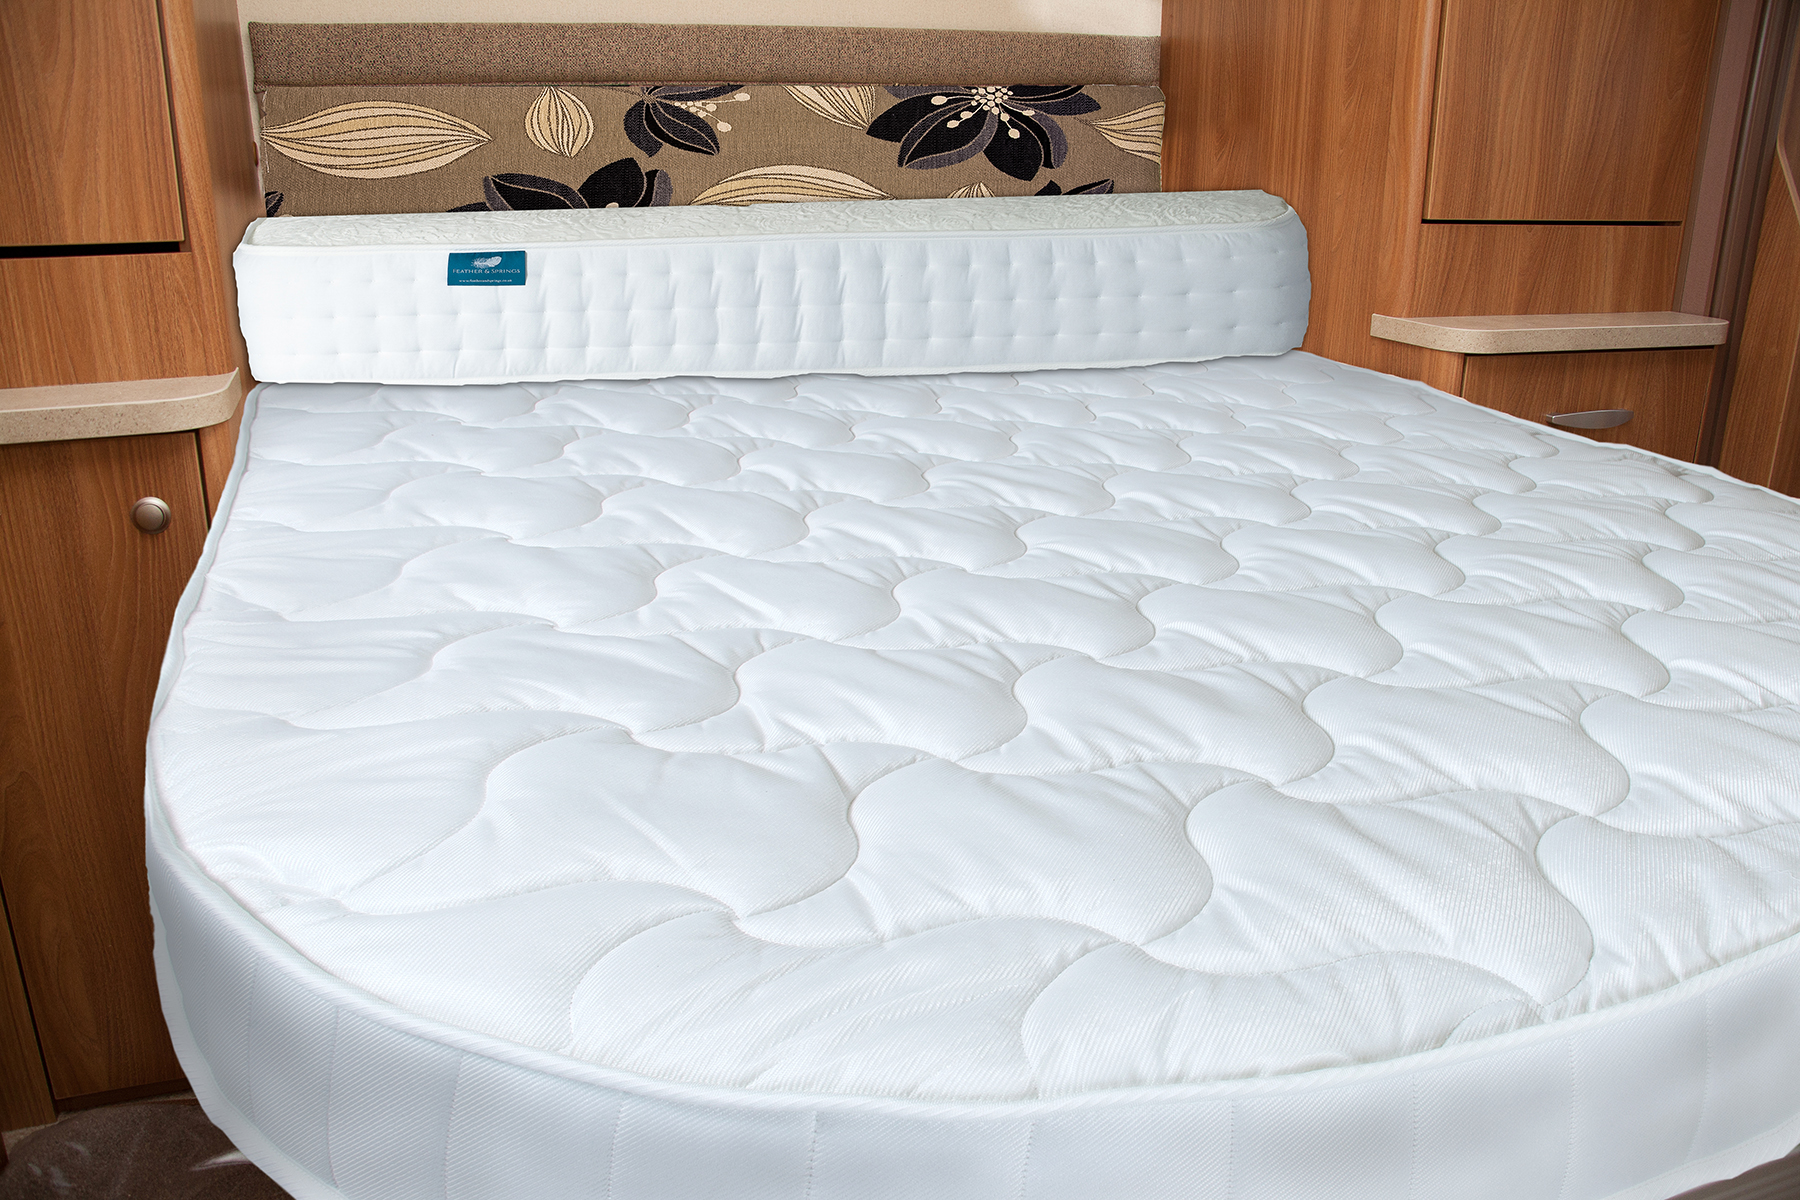 Caravan Mattress Prices Swift Caravan Island And Bolster Mattress Jonic Uk